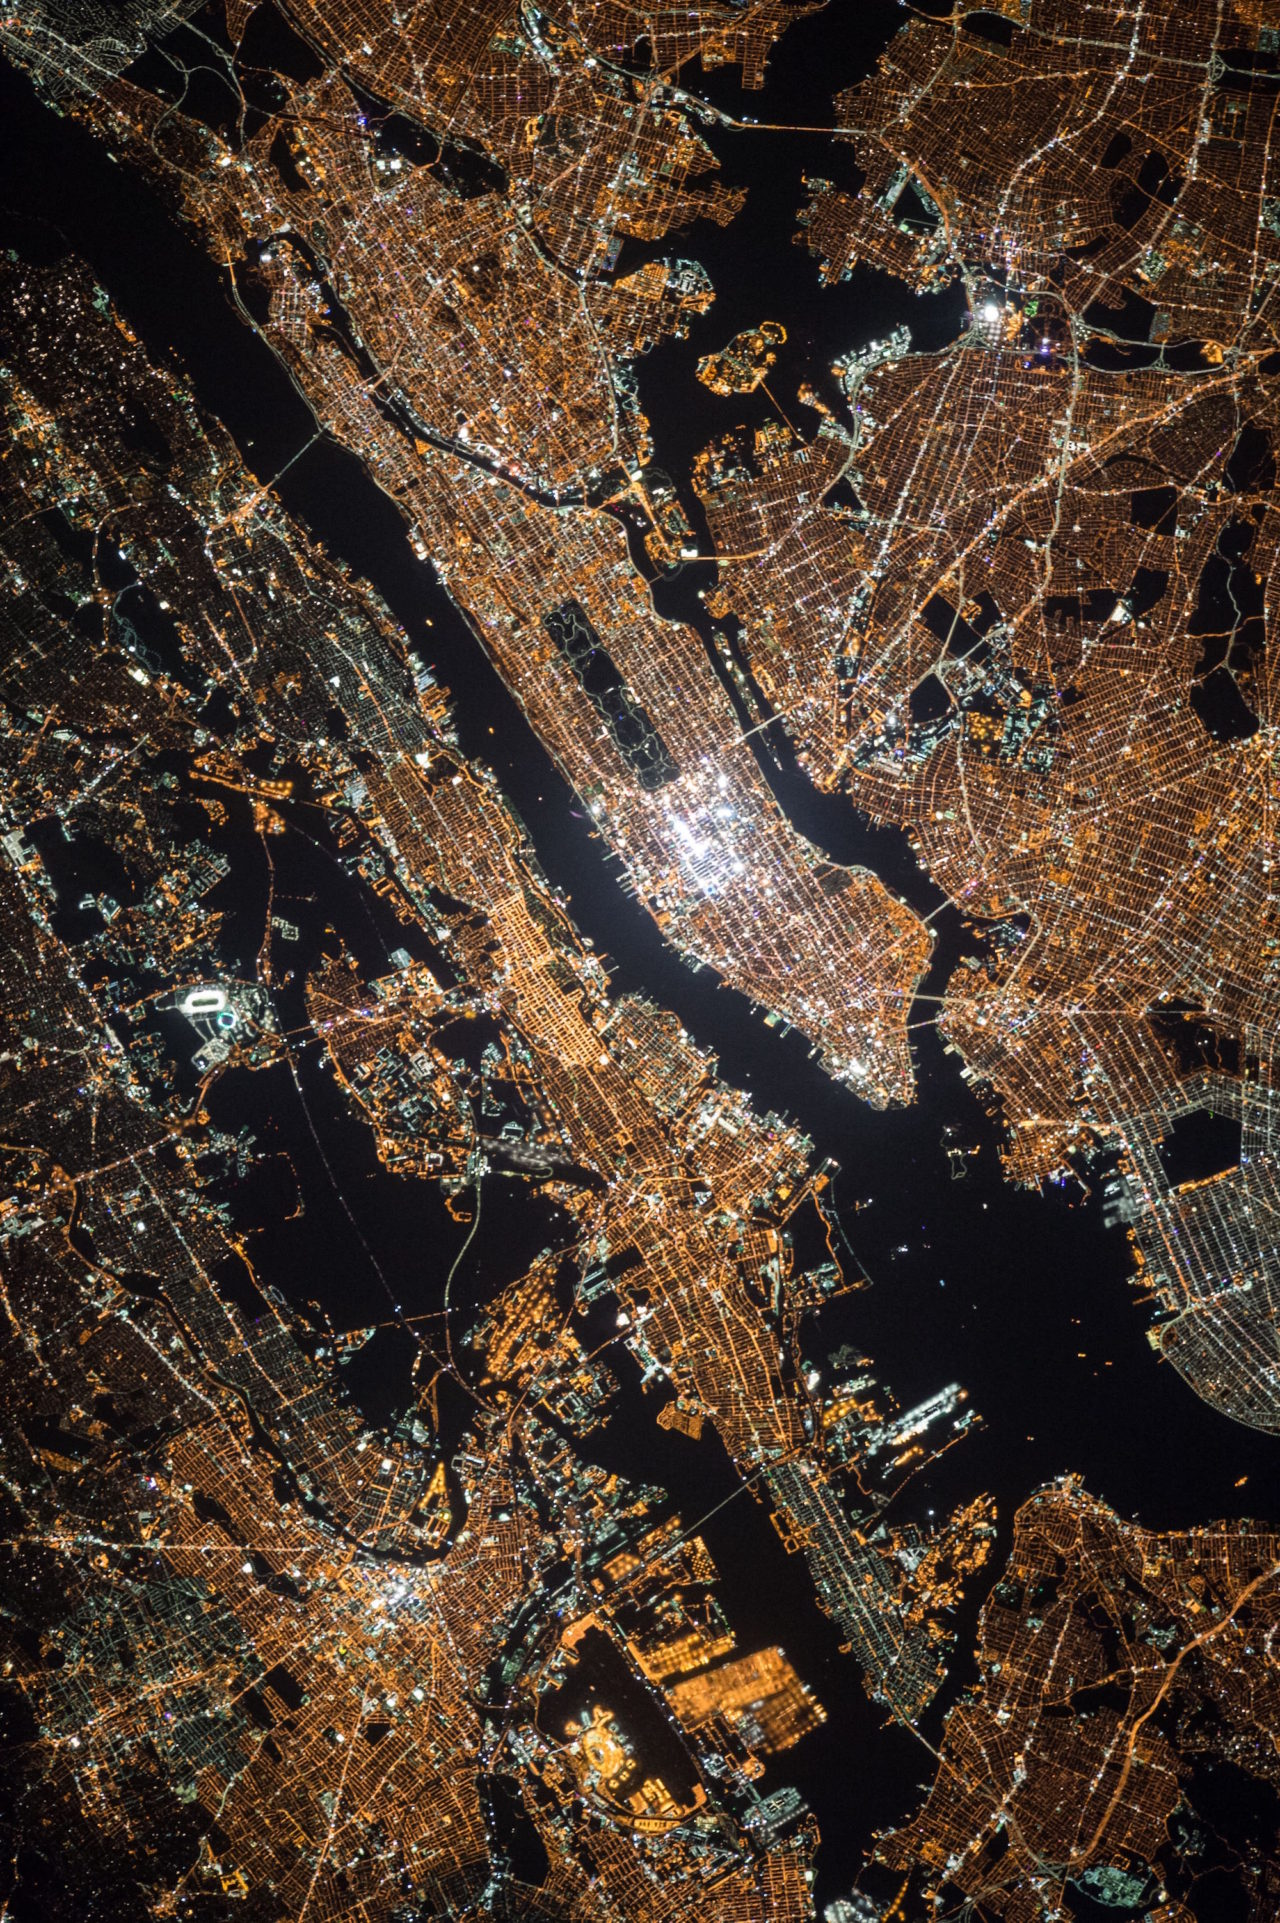 New York from space